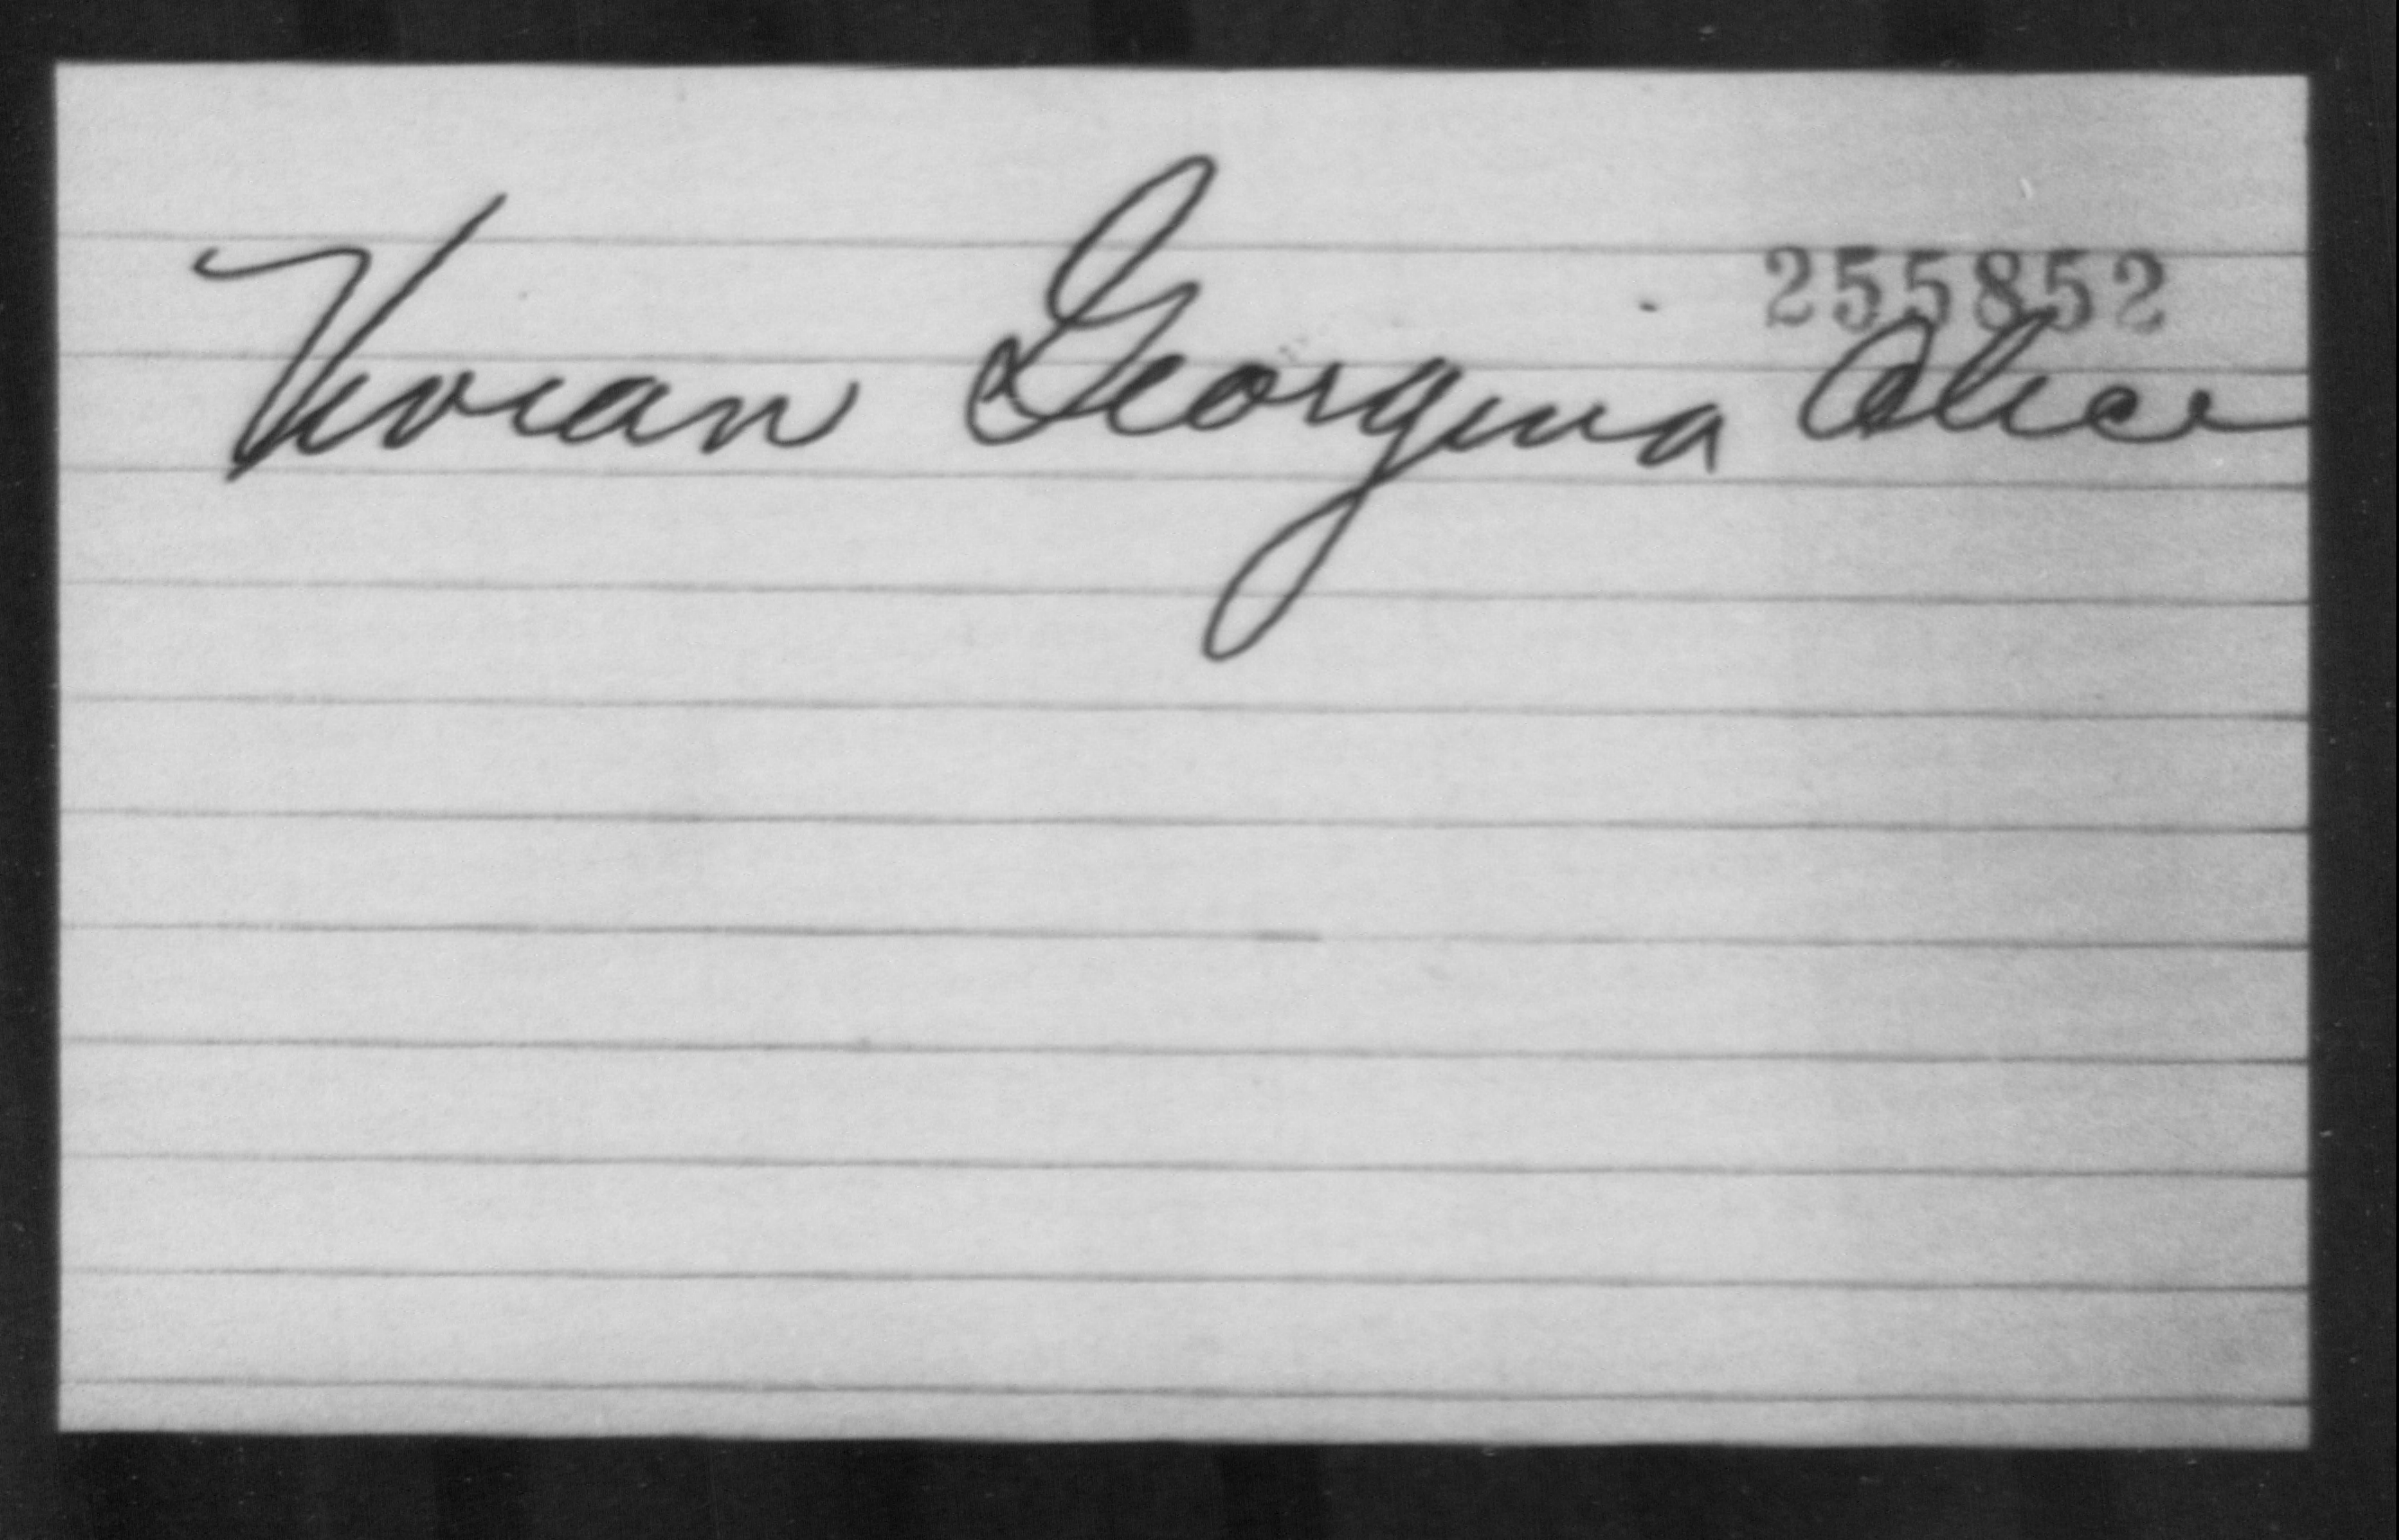 Vivian, Georgina Alice - Born: [BLANK], Naturalized: [BLANK]